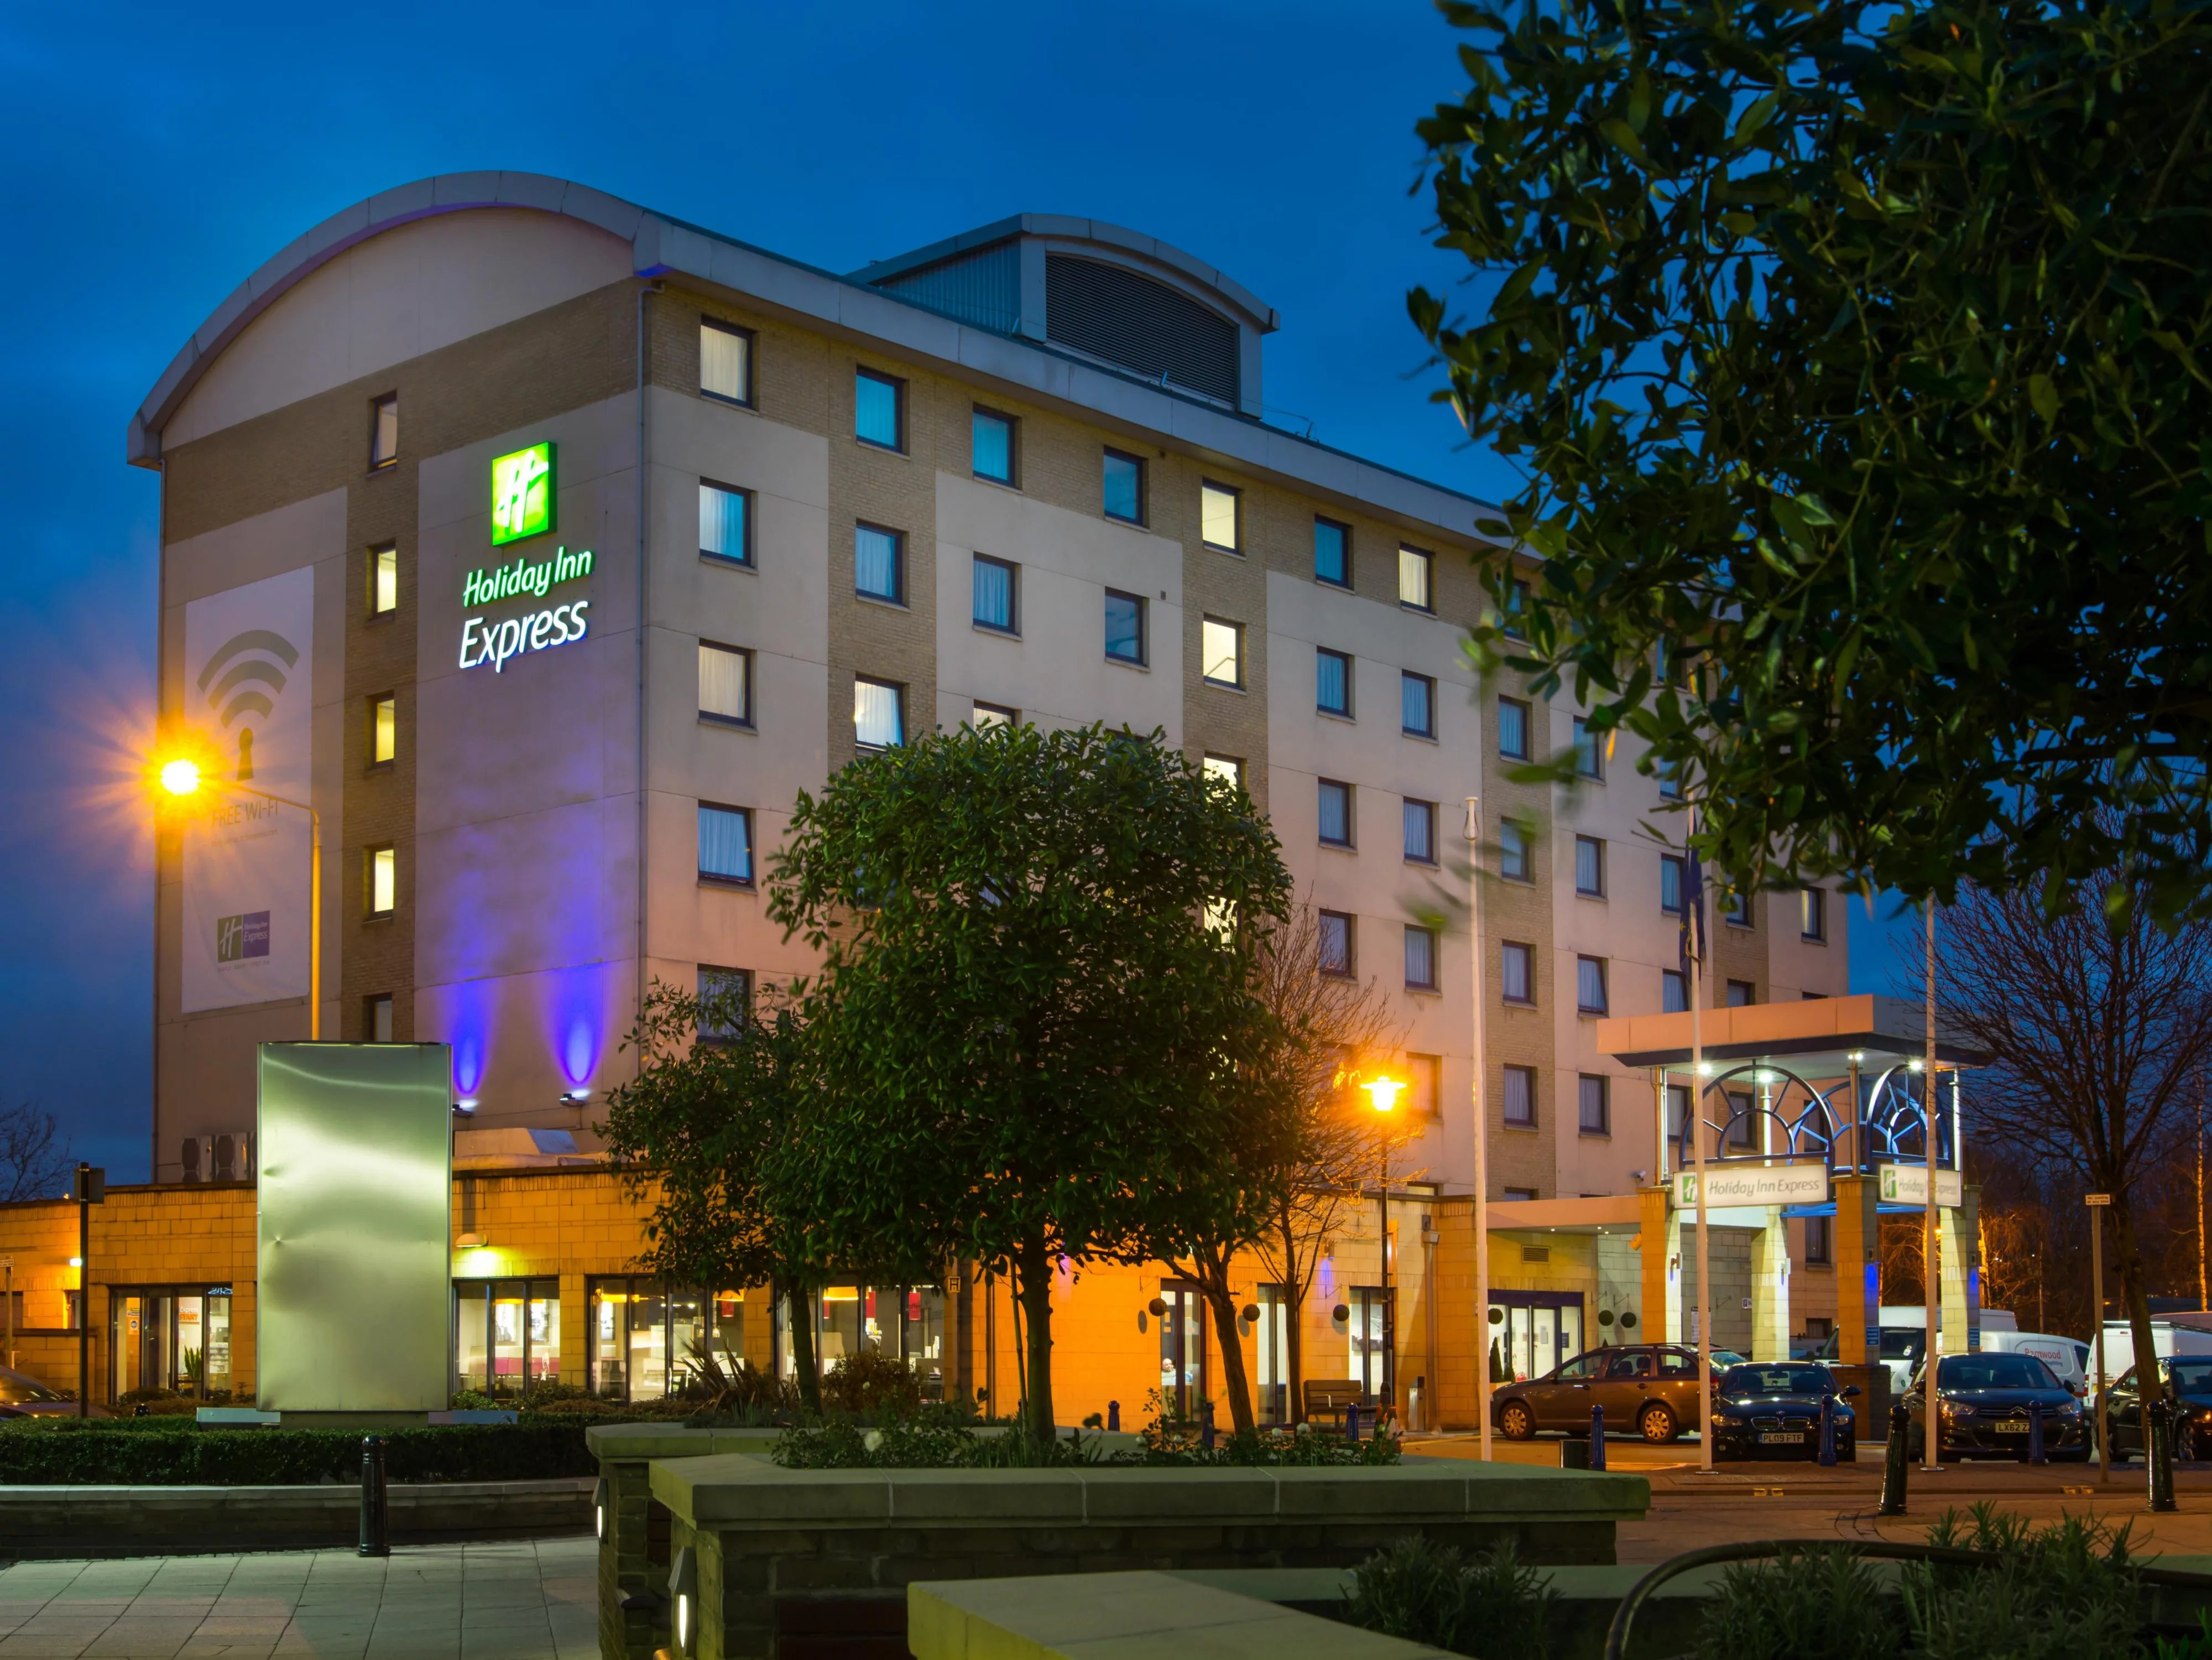 Holiday Inn Express Slough Hotels Cheap Hotels In Slough